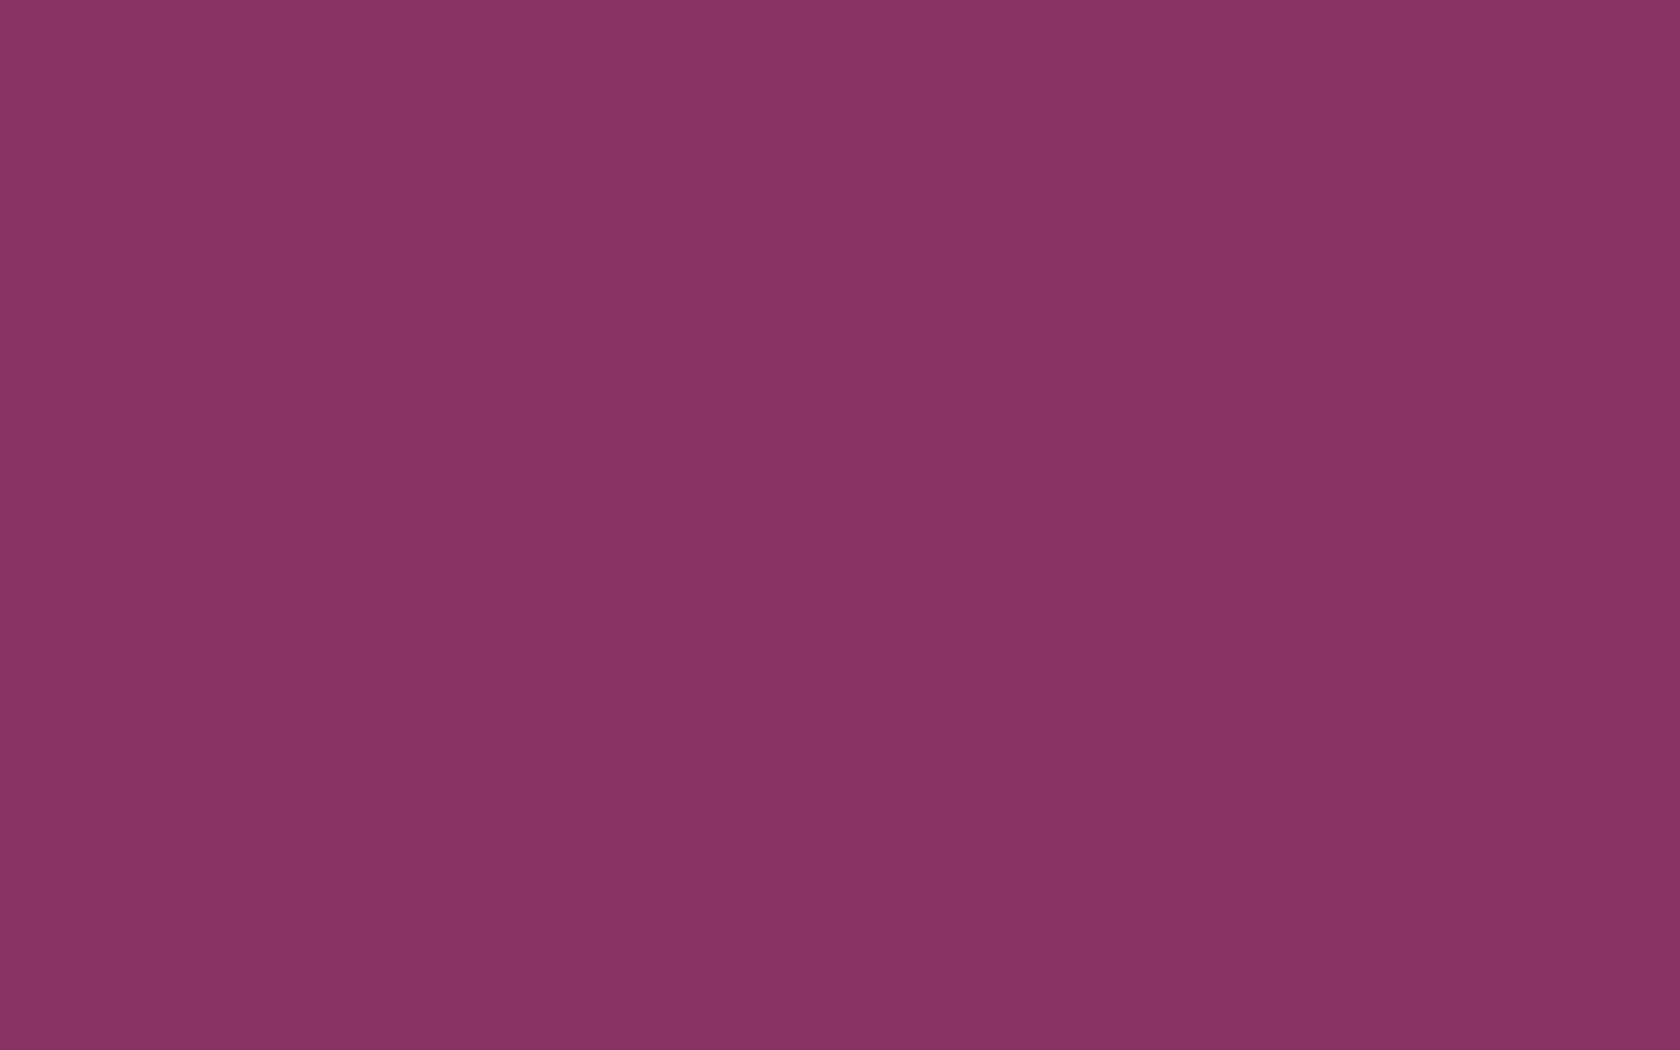 1680x1050 Boysenberry Solid Color Background